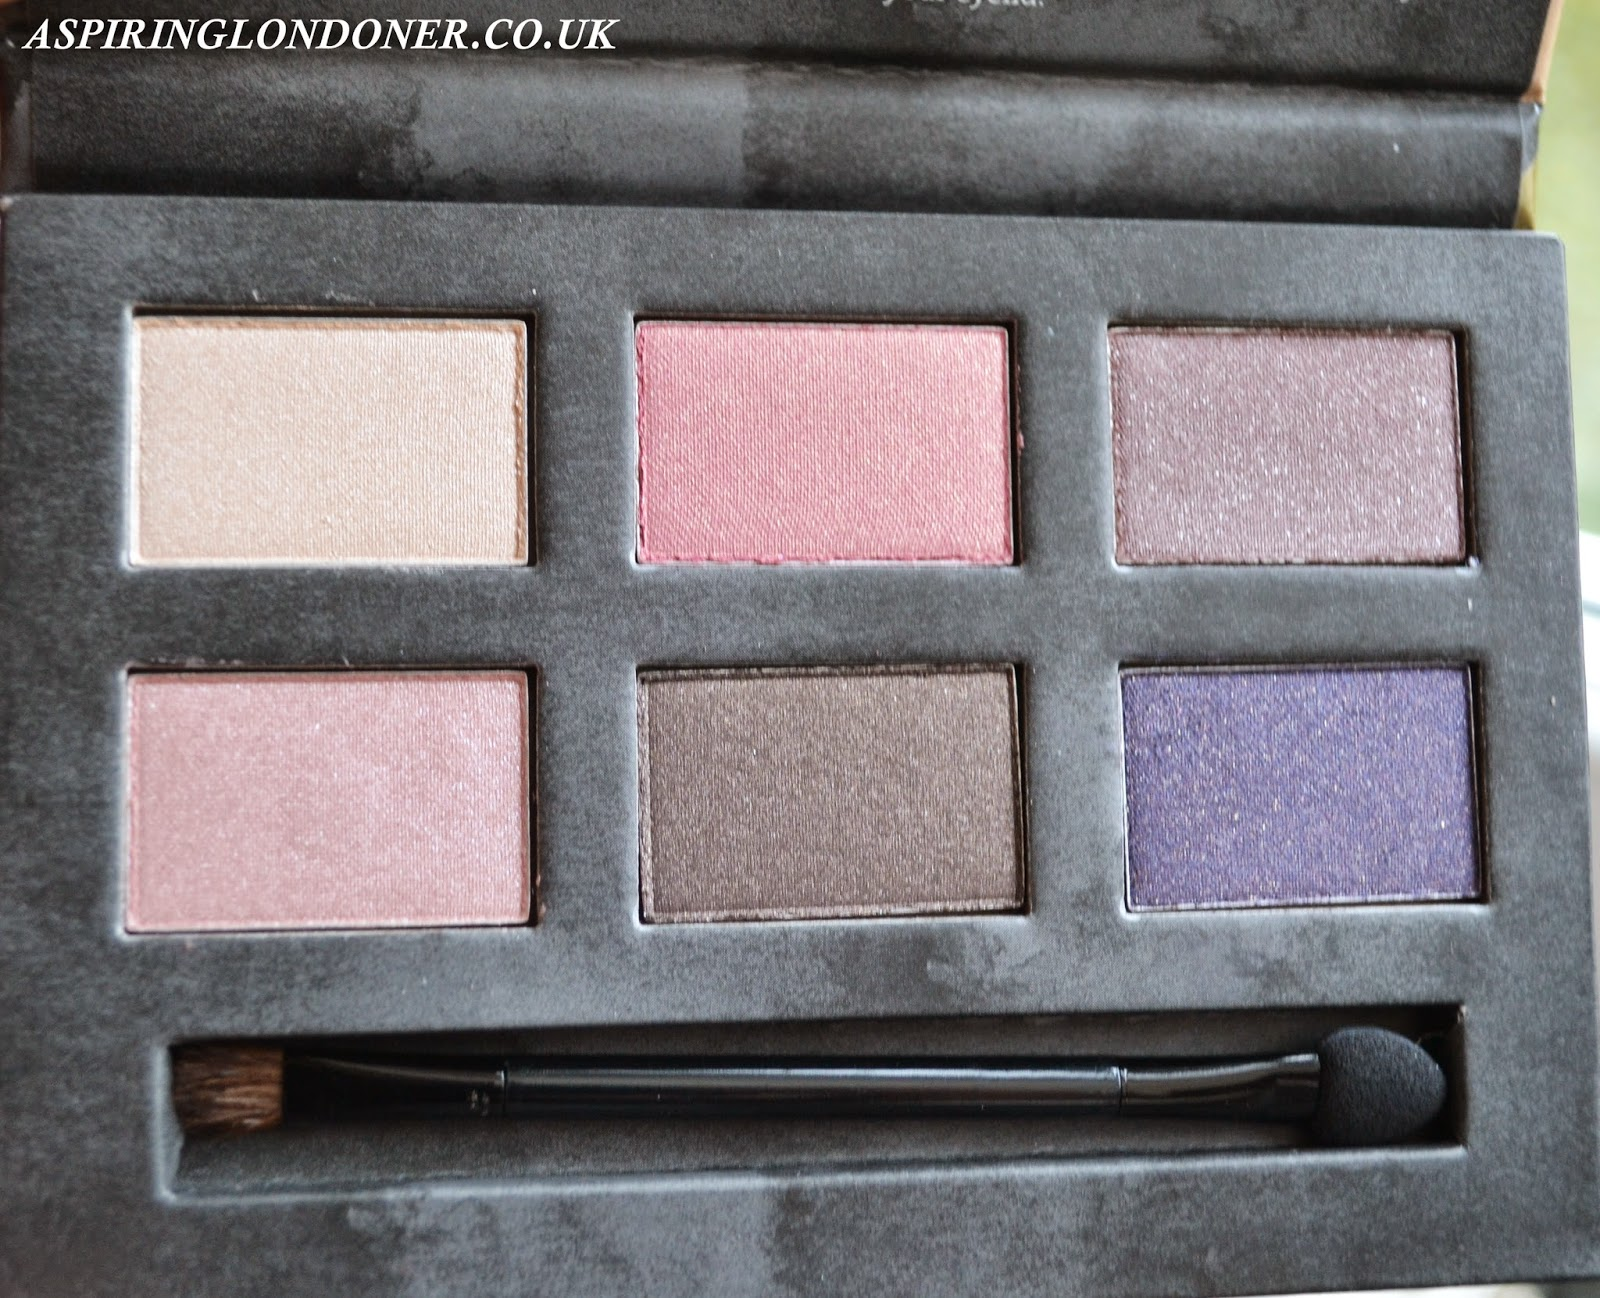 Seventeen Eye Palette and Lip Crayon Cosmetic Bag Review - Aspiring Londoner